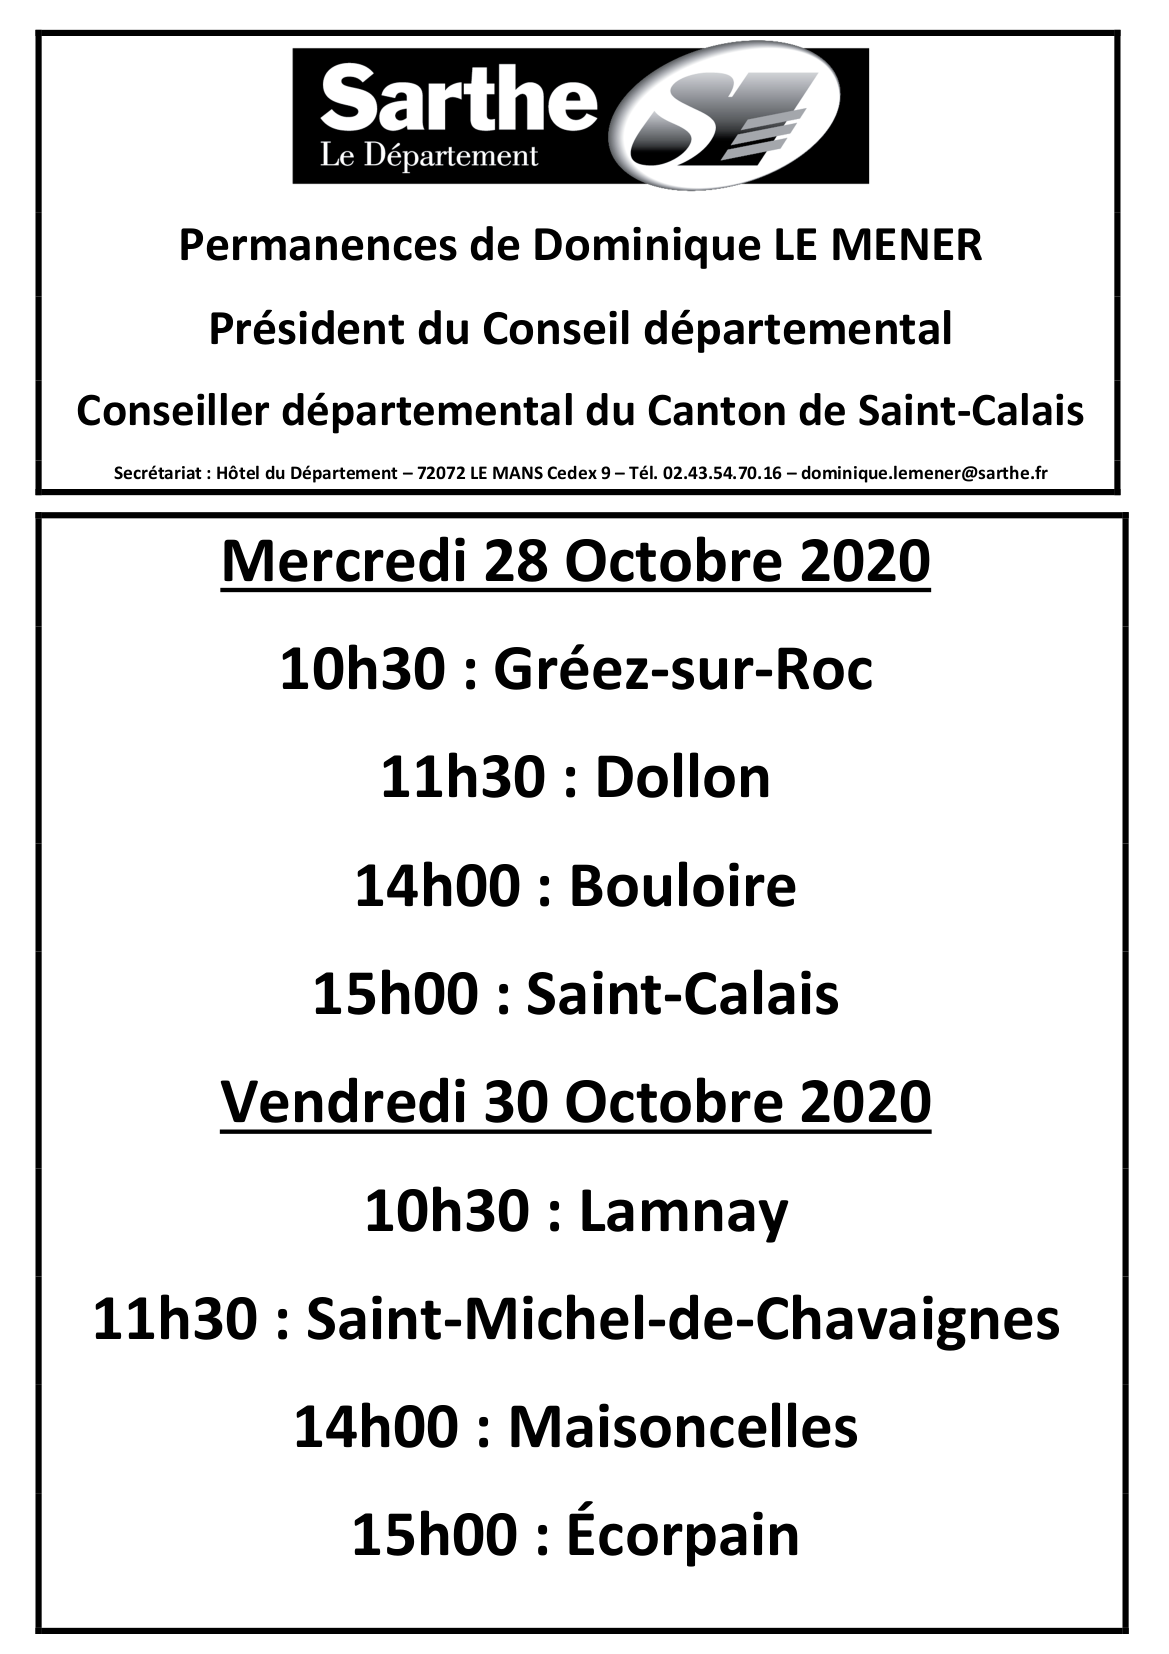 Affiche Permanences Octobre 2020 Dominique LE MENER